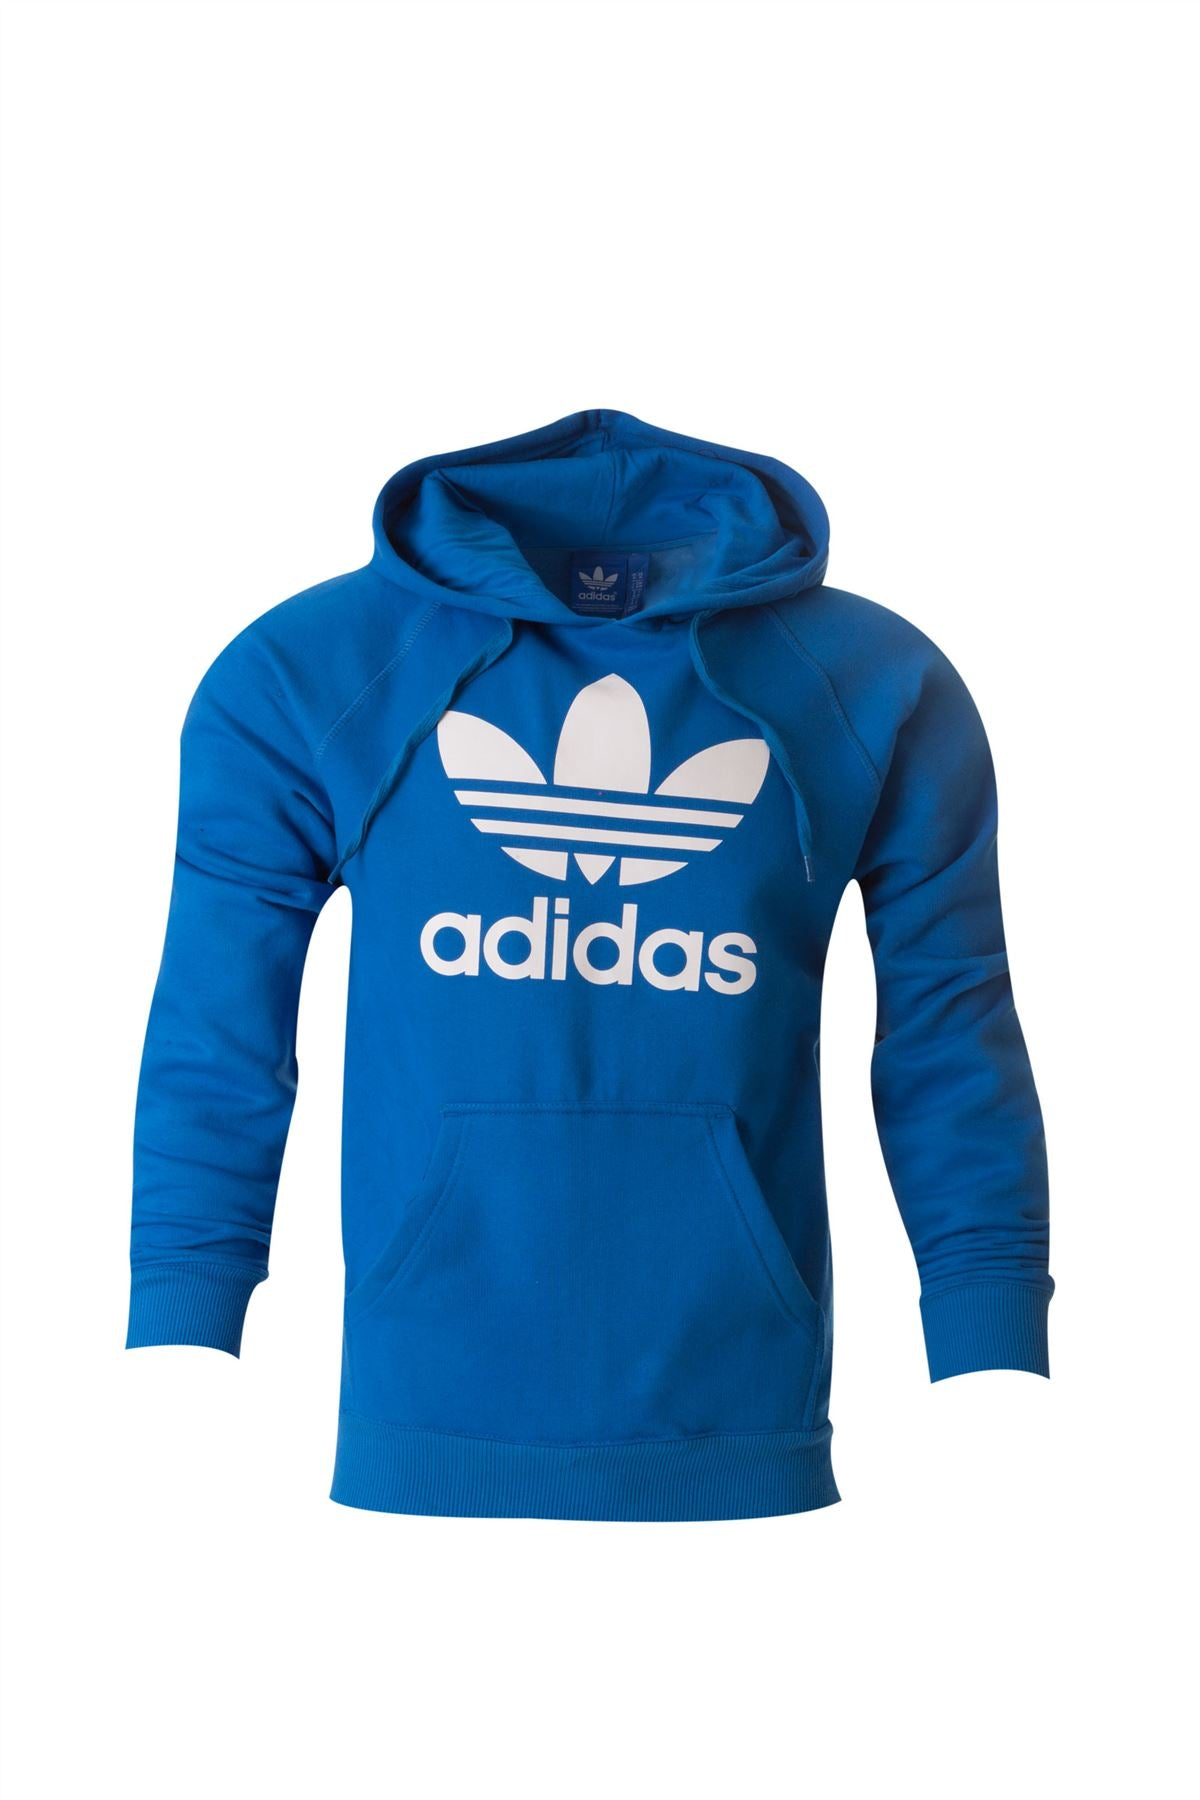 Adidas Originals Trefoil Cotton Casual Hoodie Hooded Shirt All Size S M L XL Blue